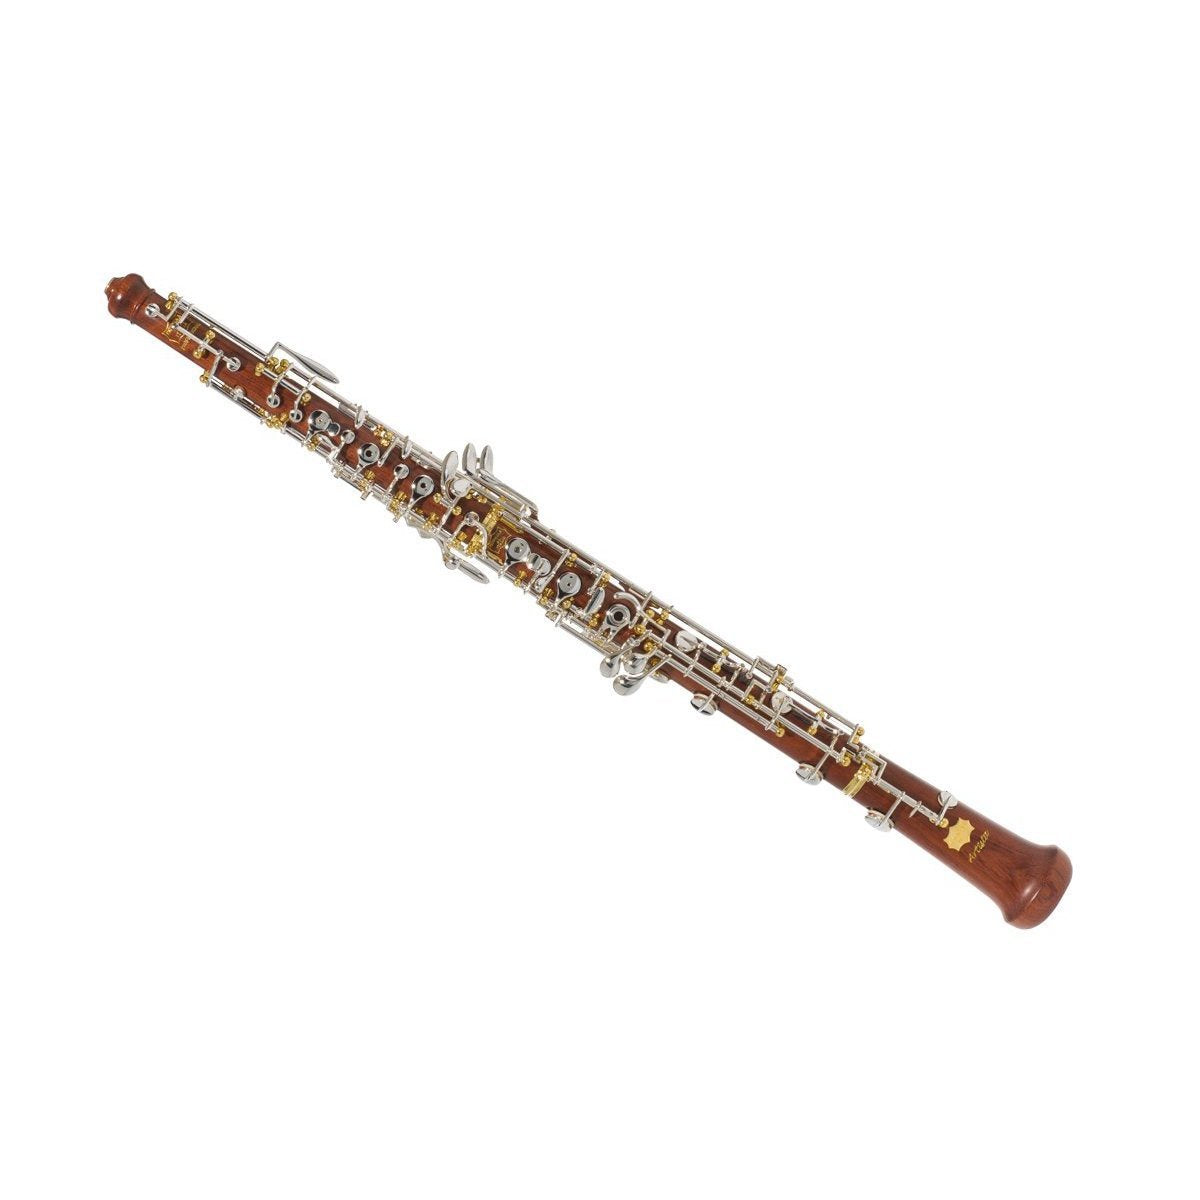 Patricola - Virtuoso PT.1 Semi-Automatic Oboe (Rosewood with Silver-Plated Keys)